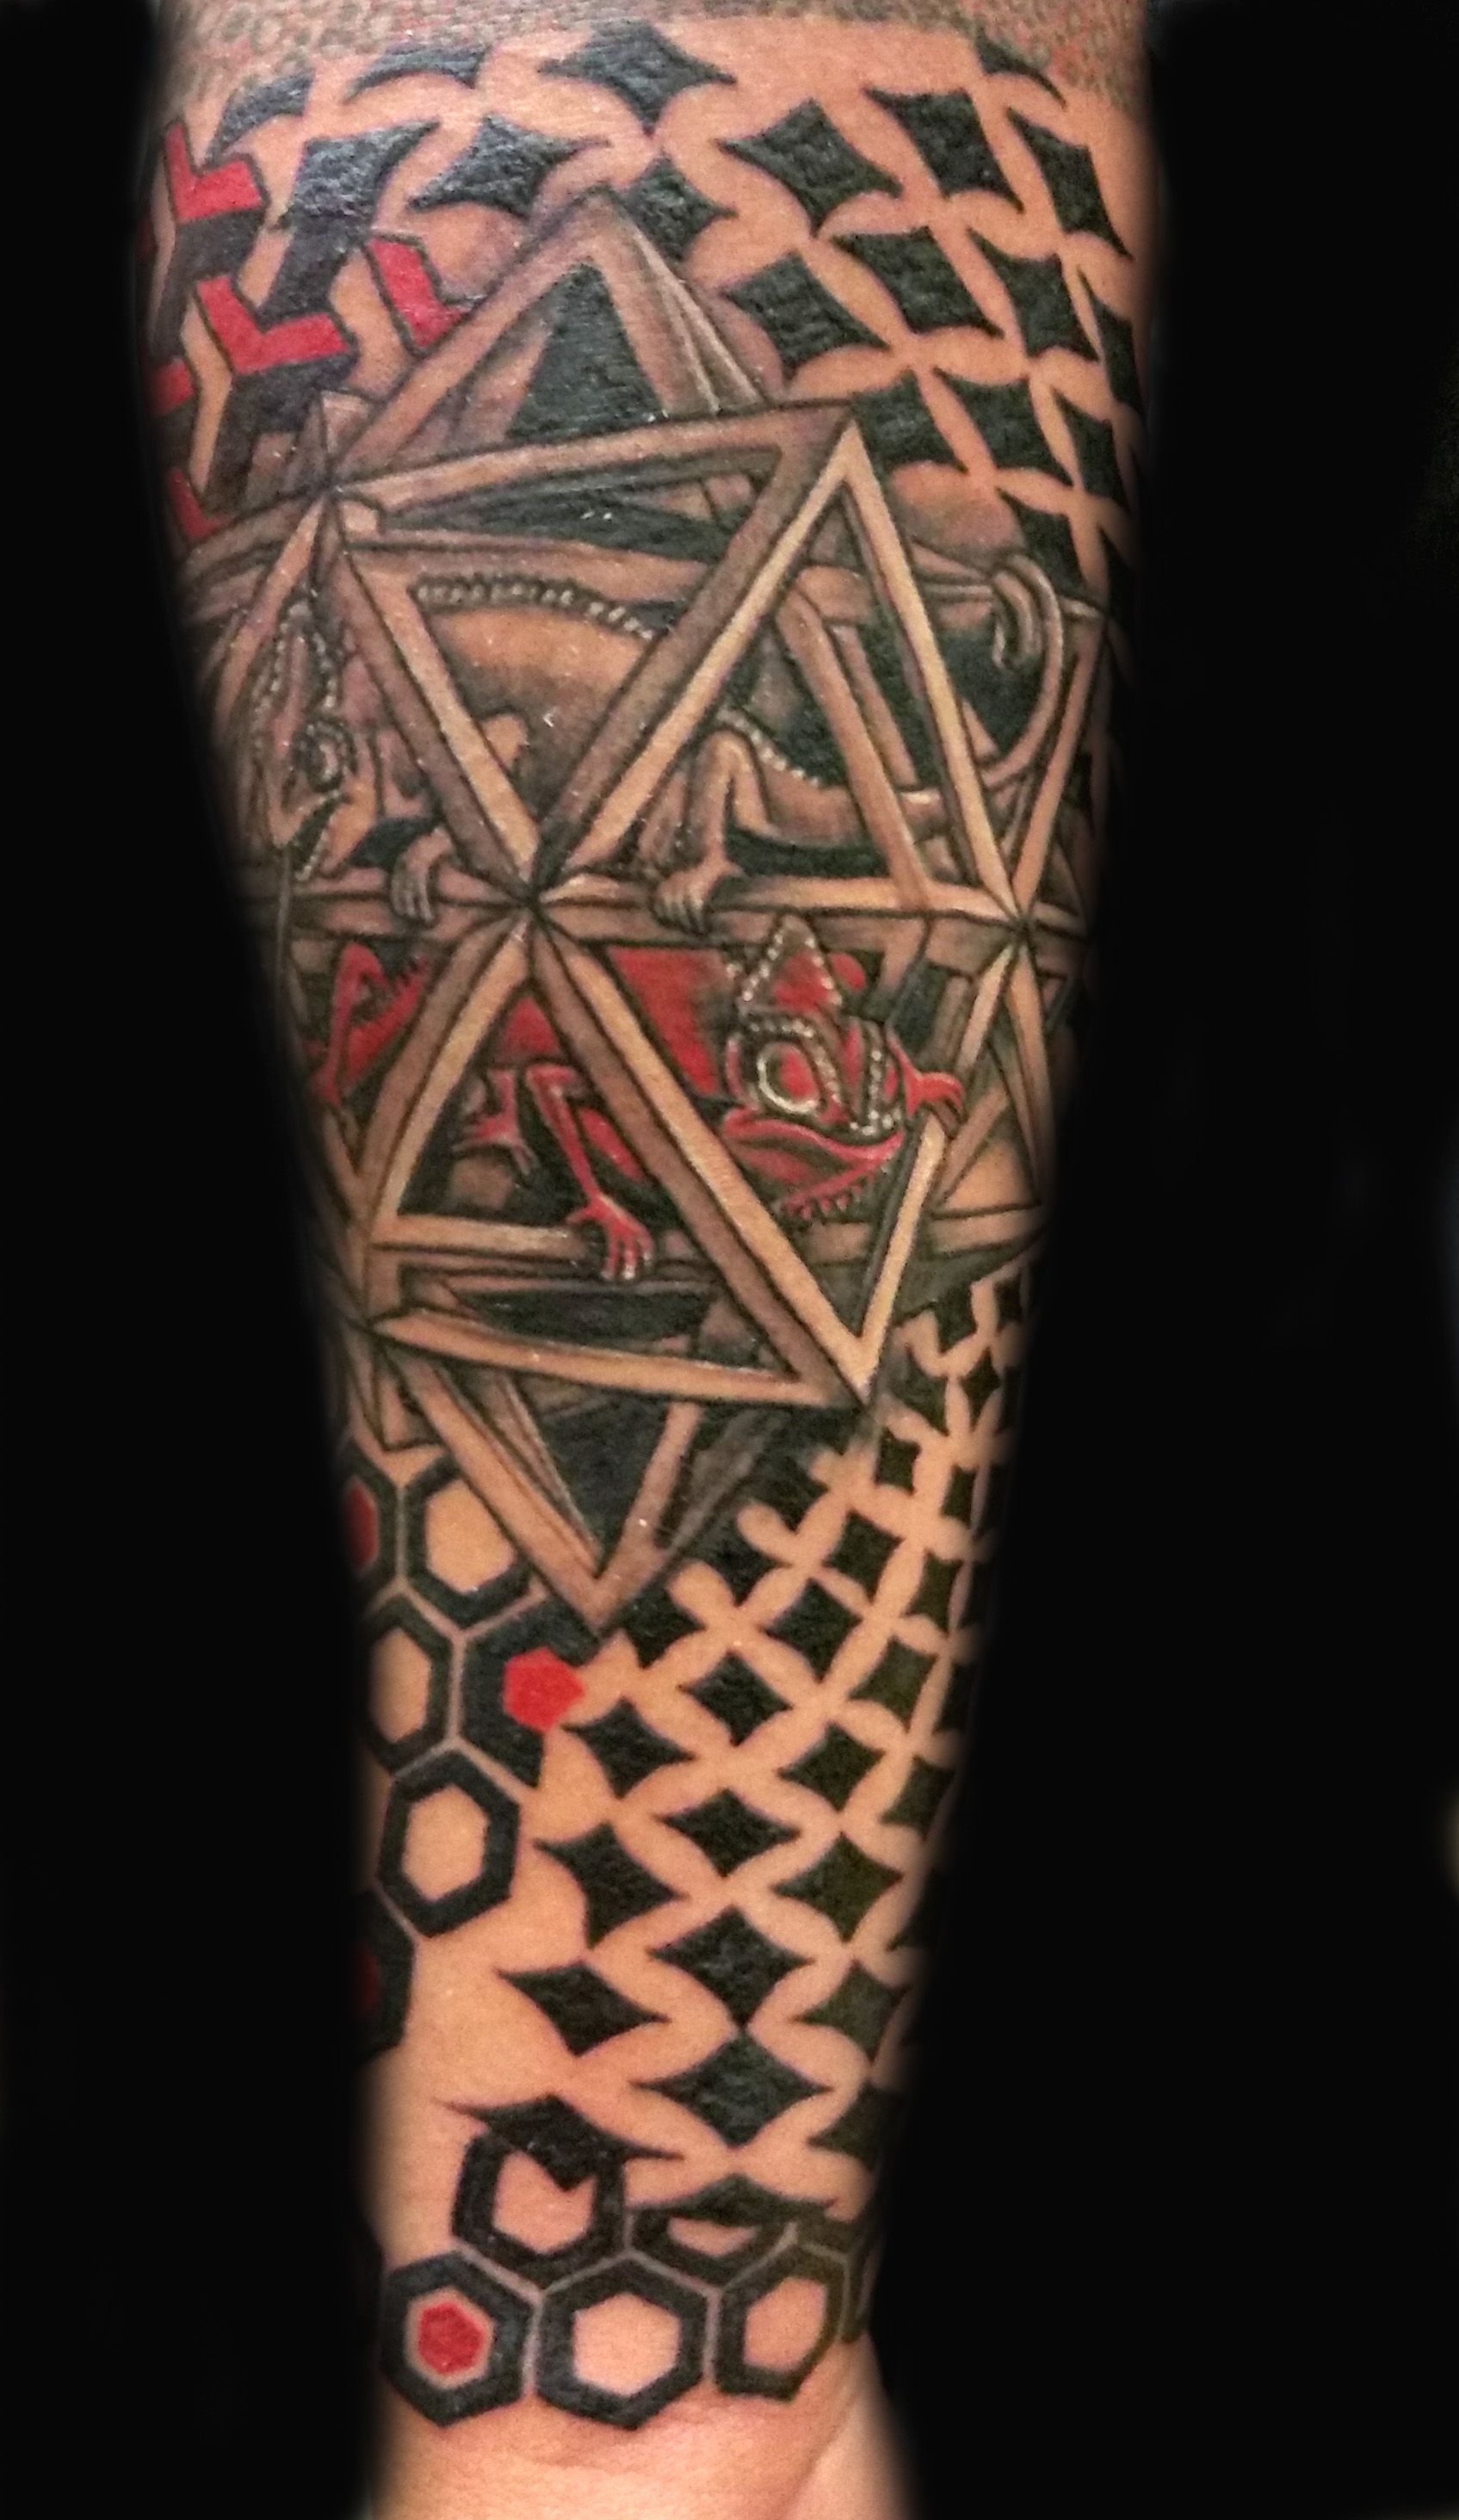 Miami\'s Best Tattoo Shop - Come visit Balinese Tattoo Miami today ...